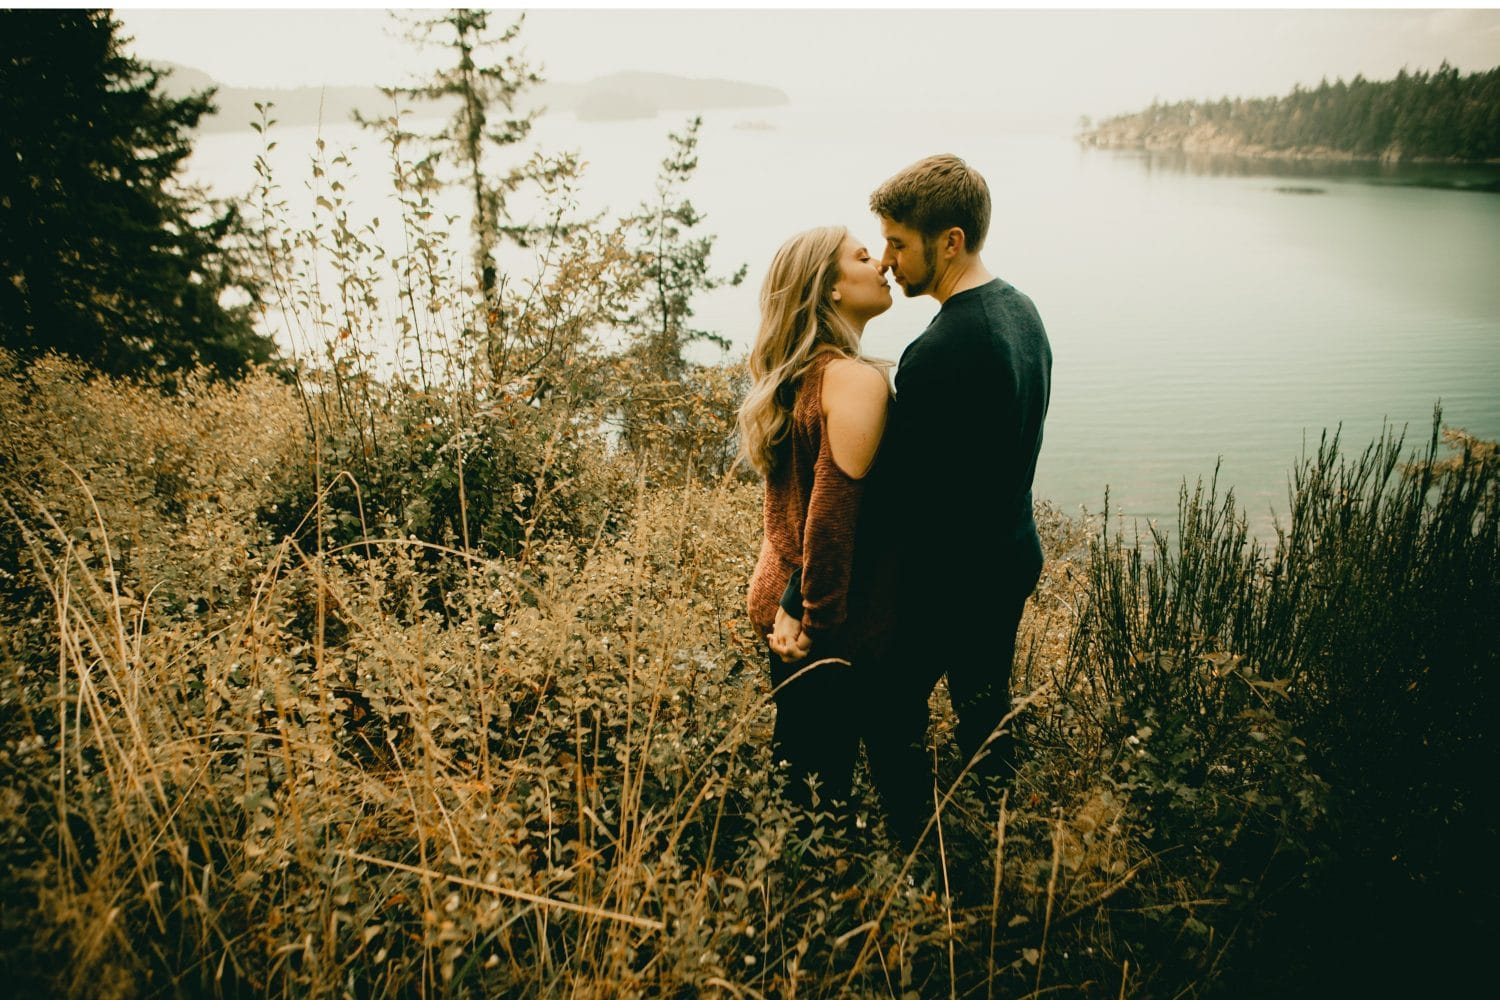 woodstock farm engagement photo bellingham wedding photographer pnw farm wedding venue